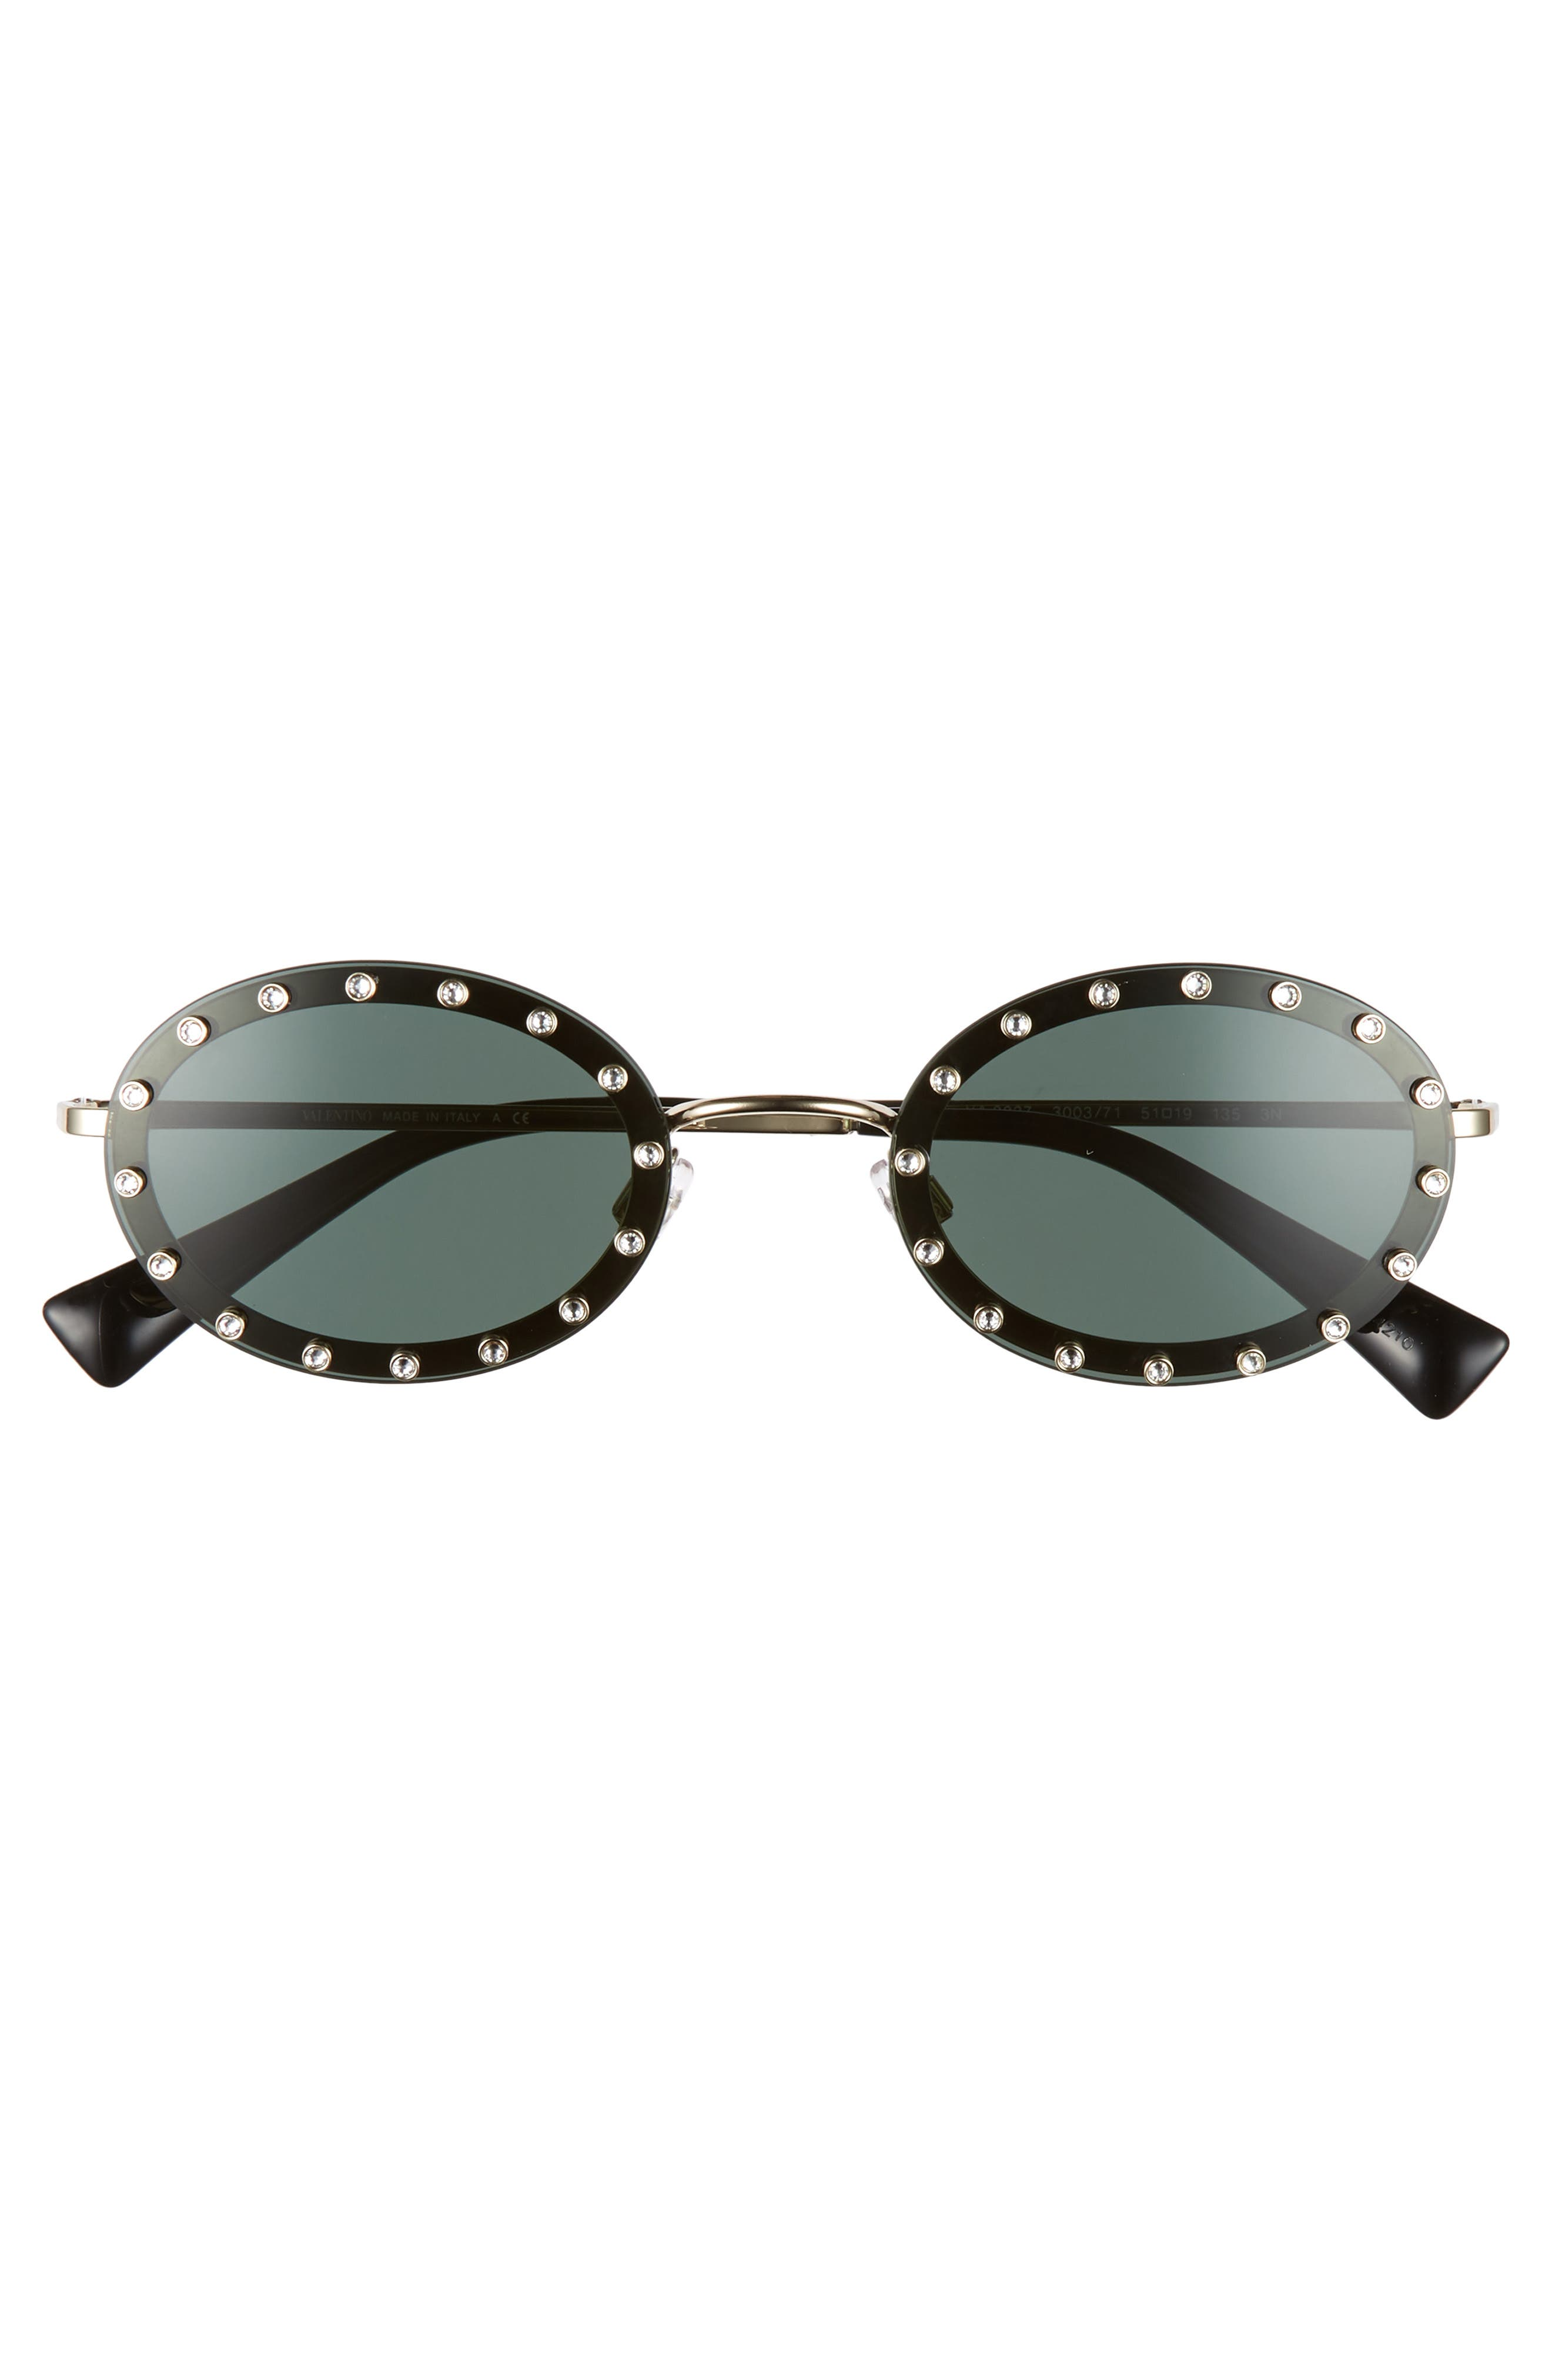 51mm Crystal Rockstud Oval Sunglasses,                             Alternate thumbnail 3, color,                             BLACK/ GREEN SOLID